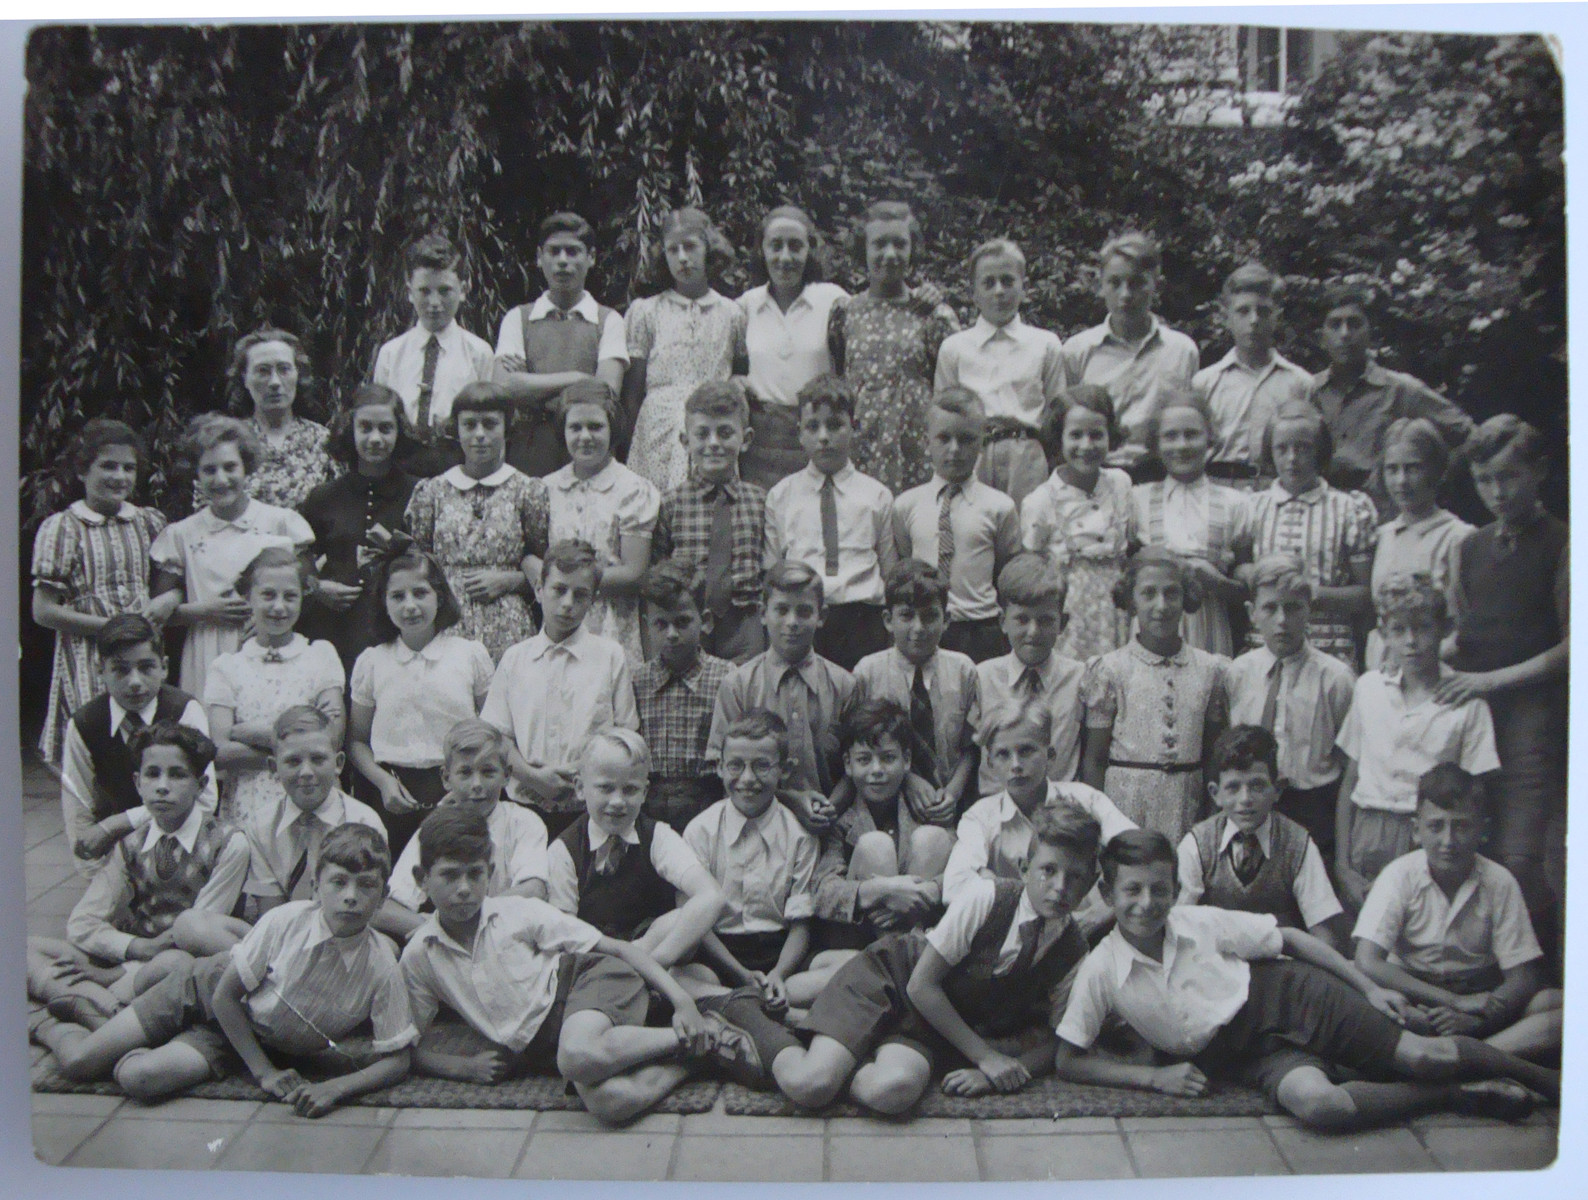 Group portrait of elementary school students in Amsterdam.    Among those pictured are Eva Geiringer (right) and Suzanne Lederman (on the far left).